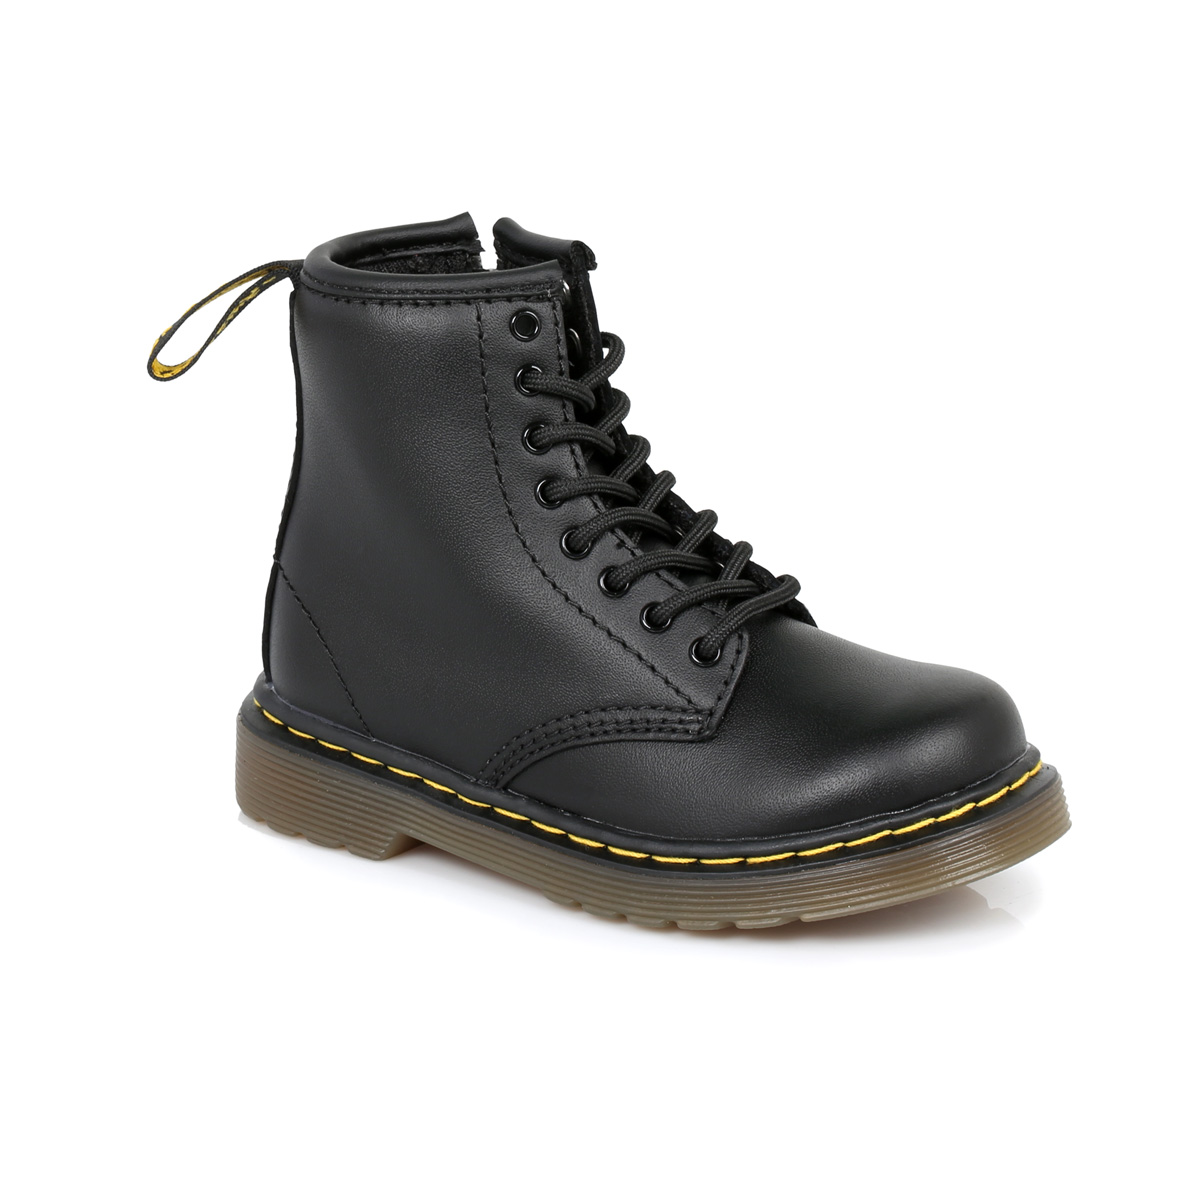 dr martens black brooklee leather boots sizes 6 9 ebay